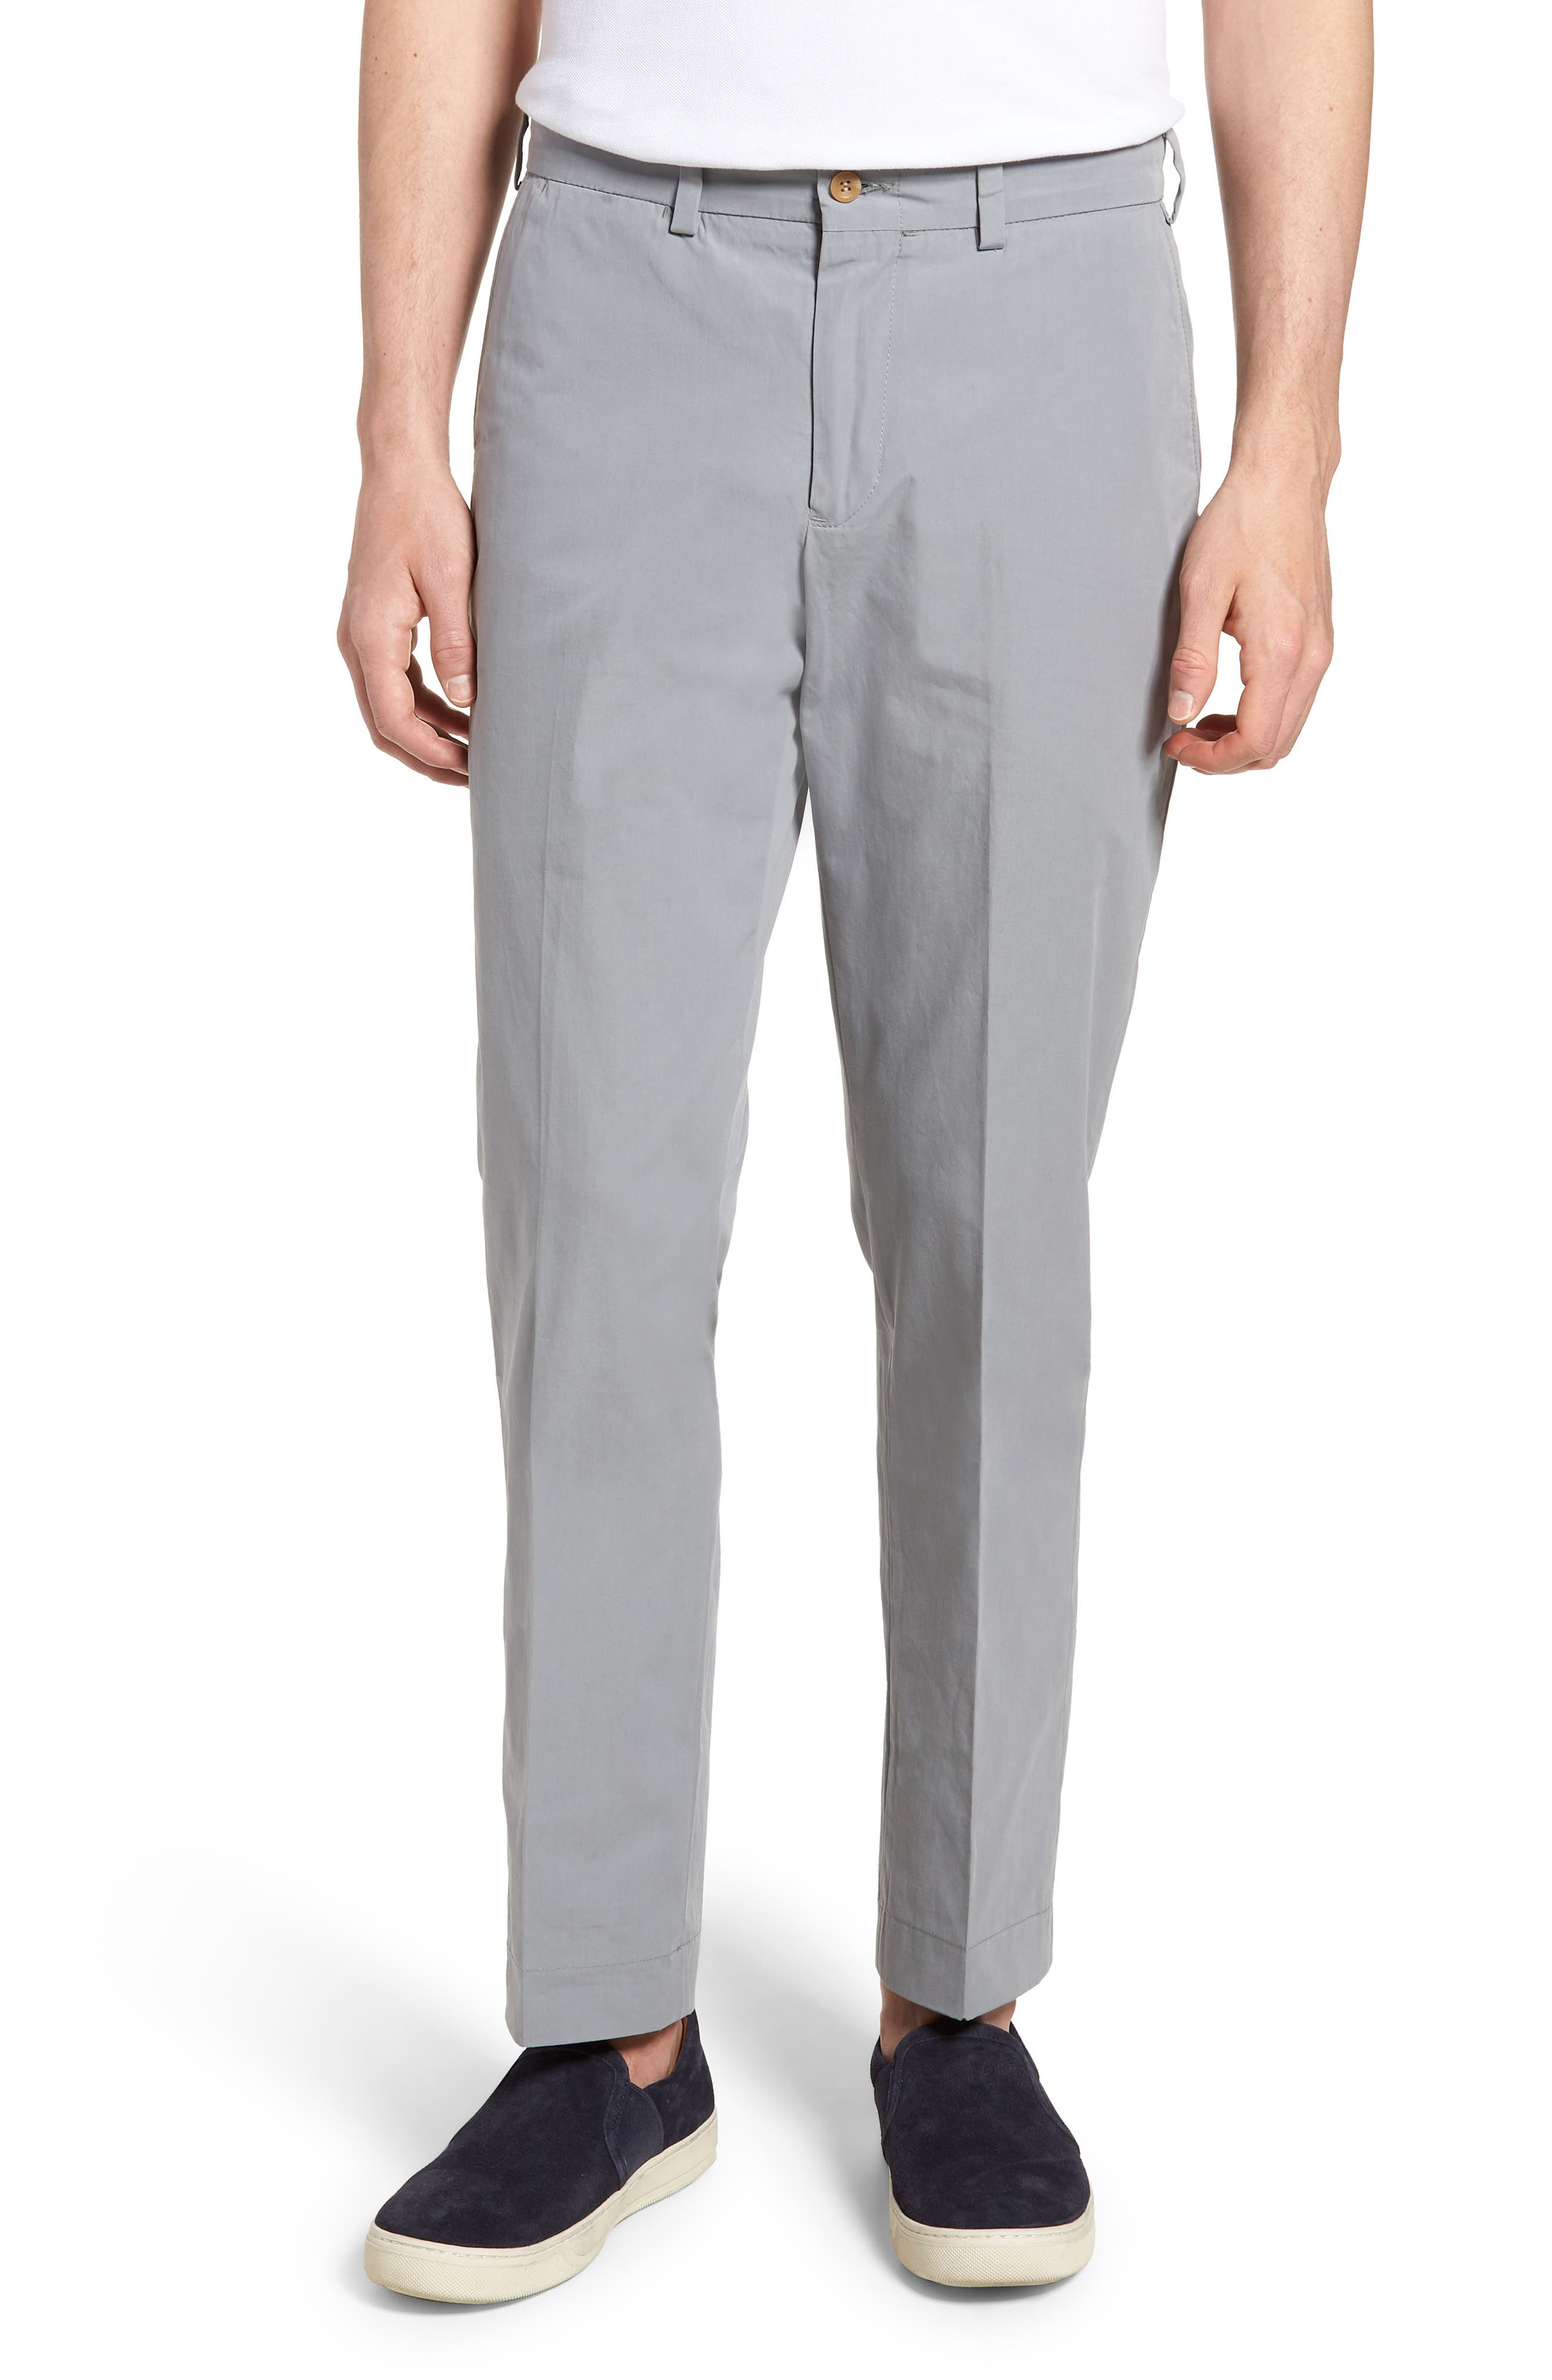 M3 Straight Fit Flat Front Tropical Poplin Pants,                         Main,                         color, Nickel